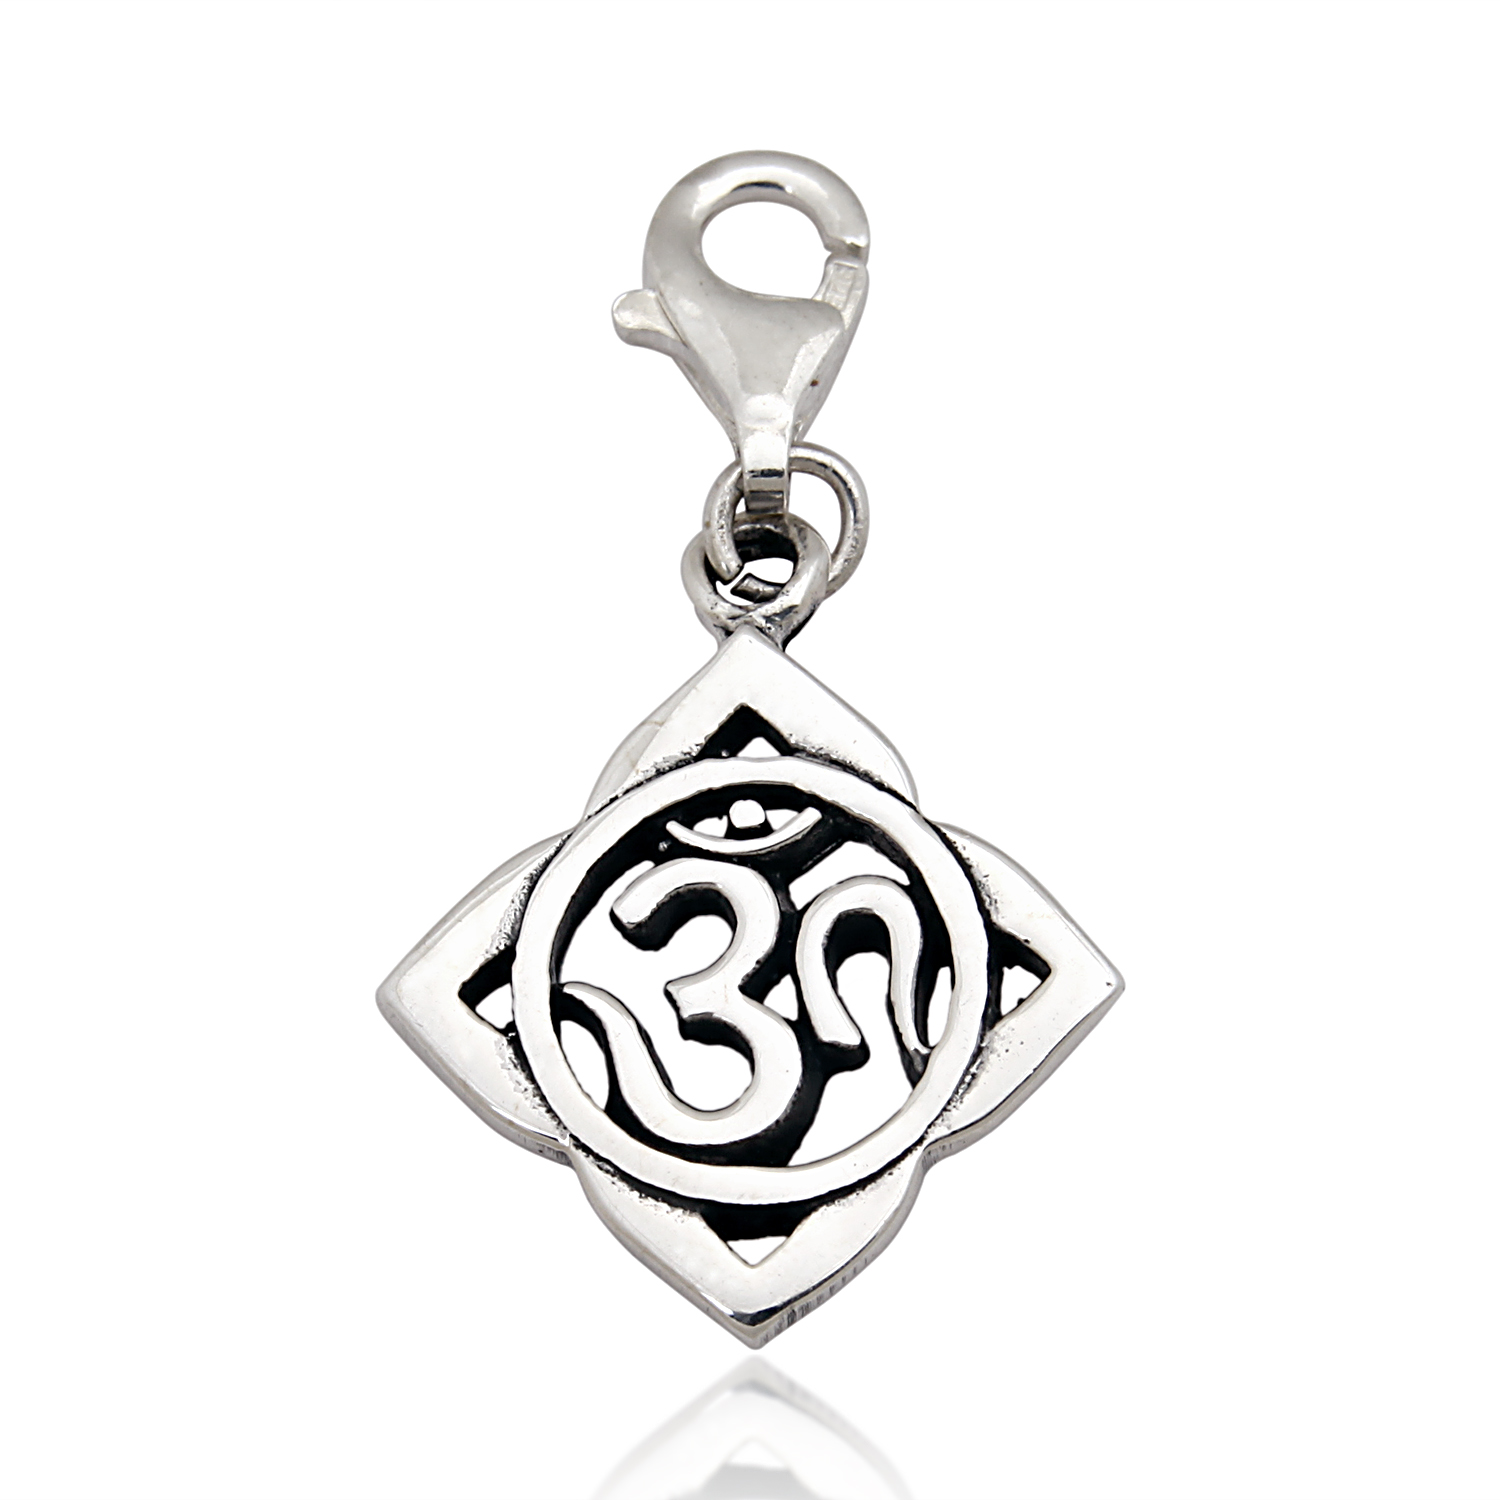 925 Sterling Silver Oxidized Om Ohm Hindu Yoga Symbol, Lotus Flower Lobster Clasp Charm